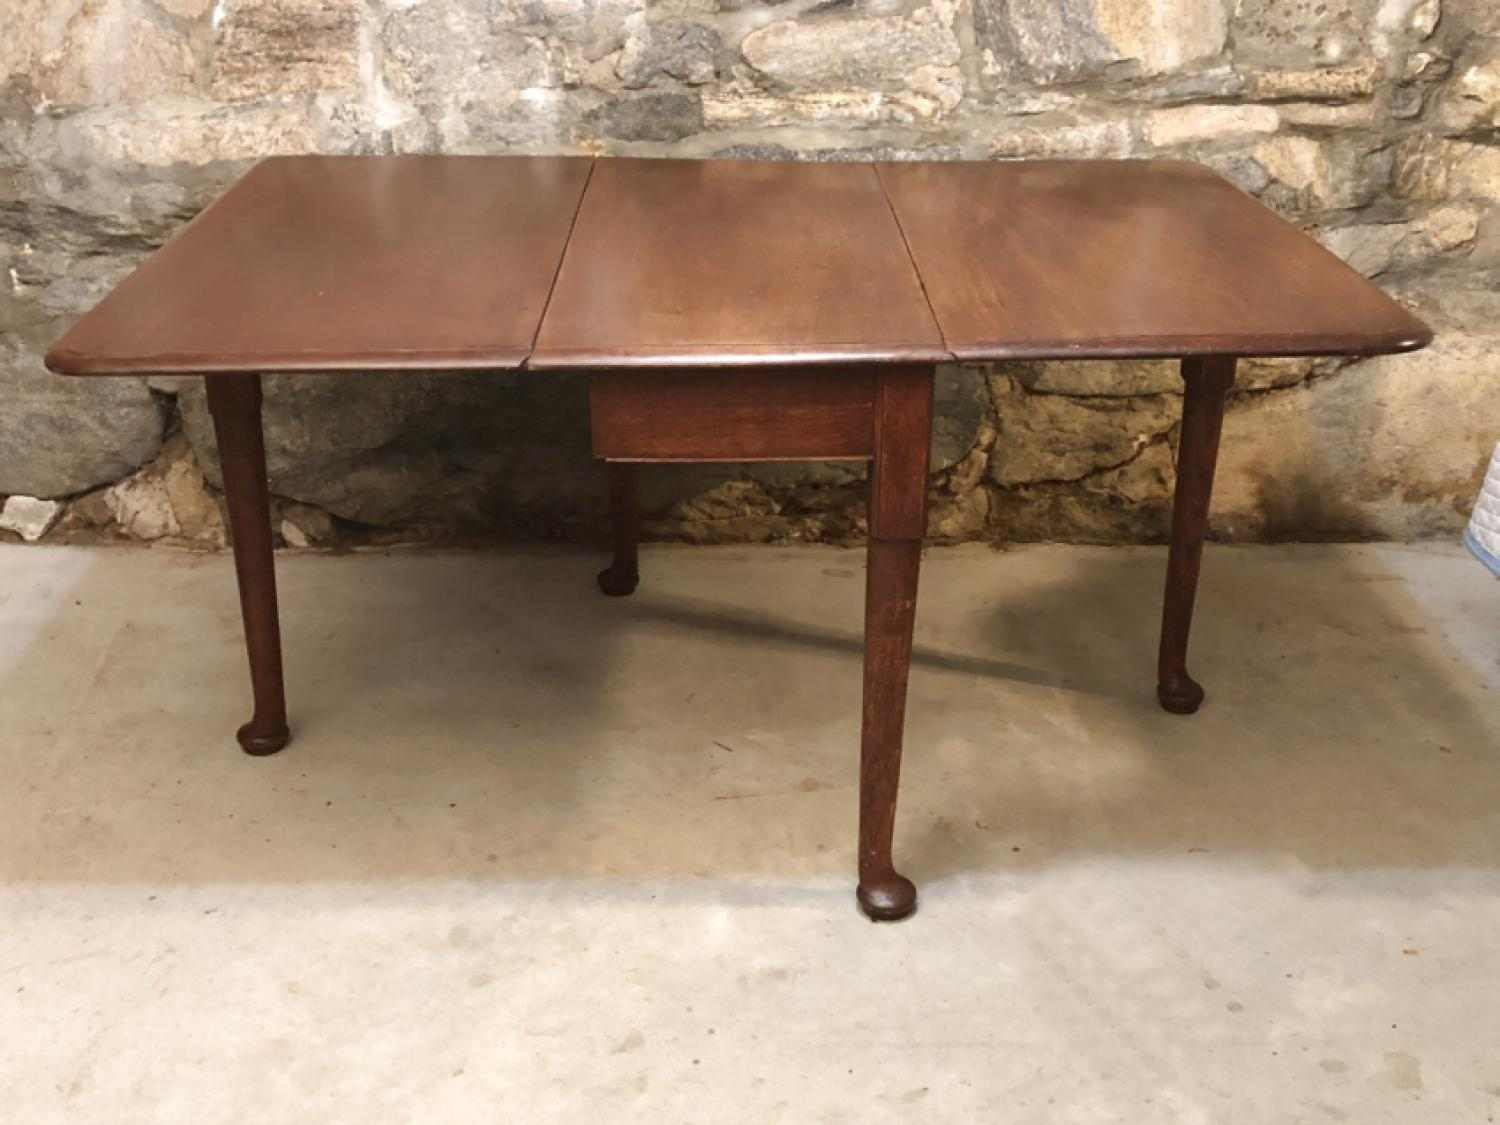 Georgian period English or Irish oak swing leg table